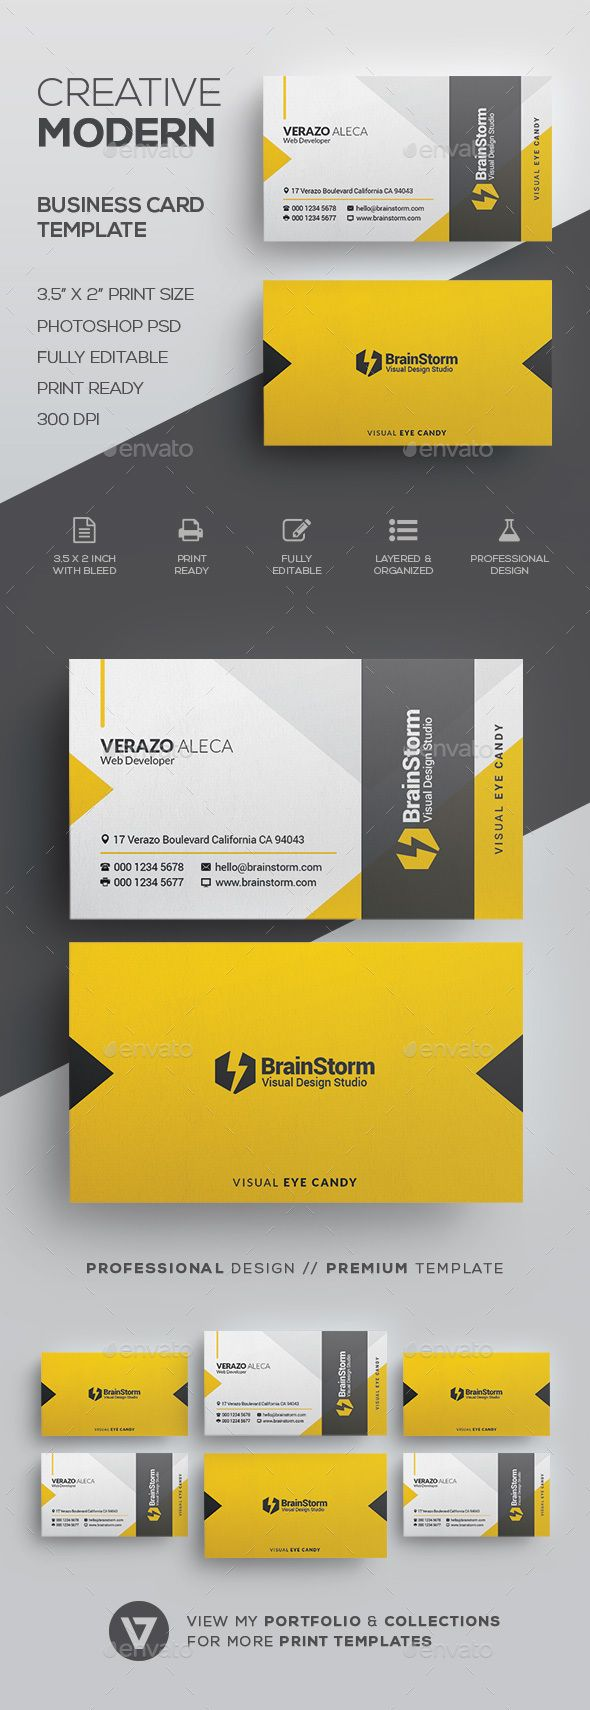 Create customised business cards from a range of